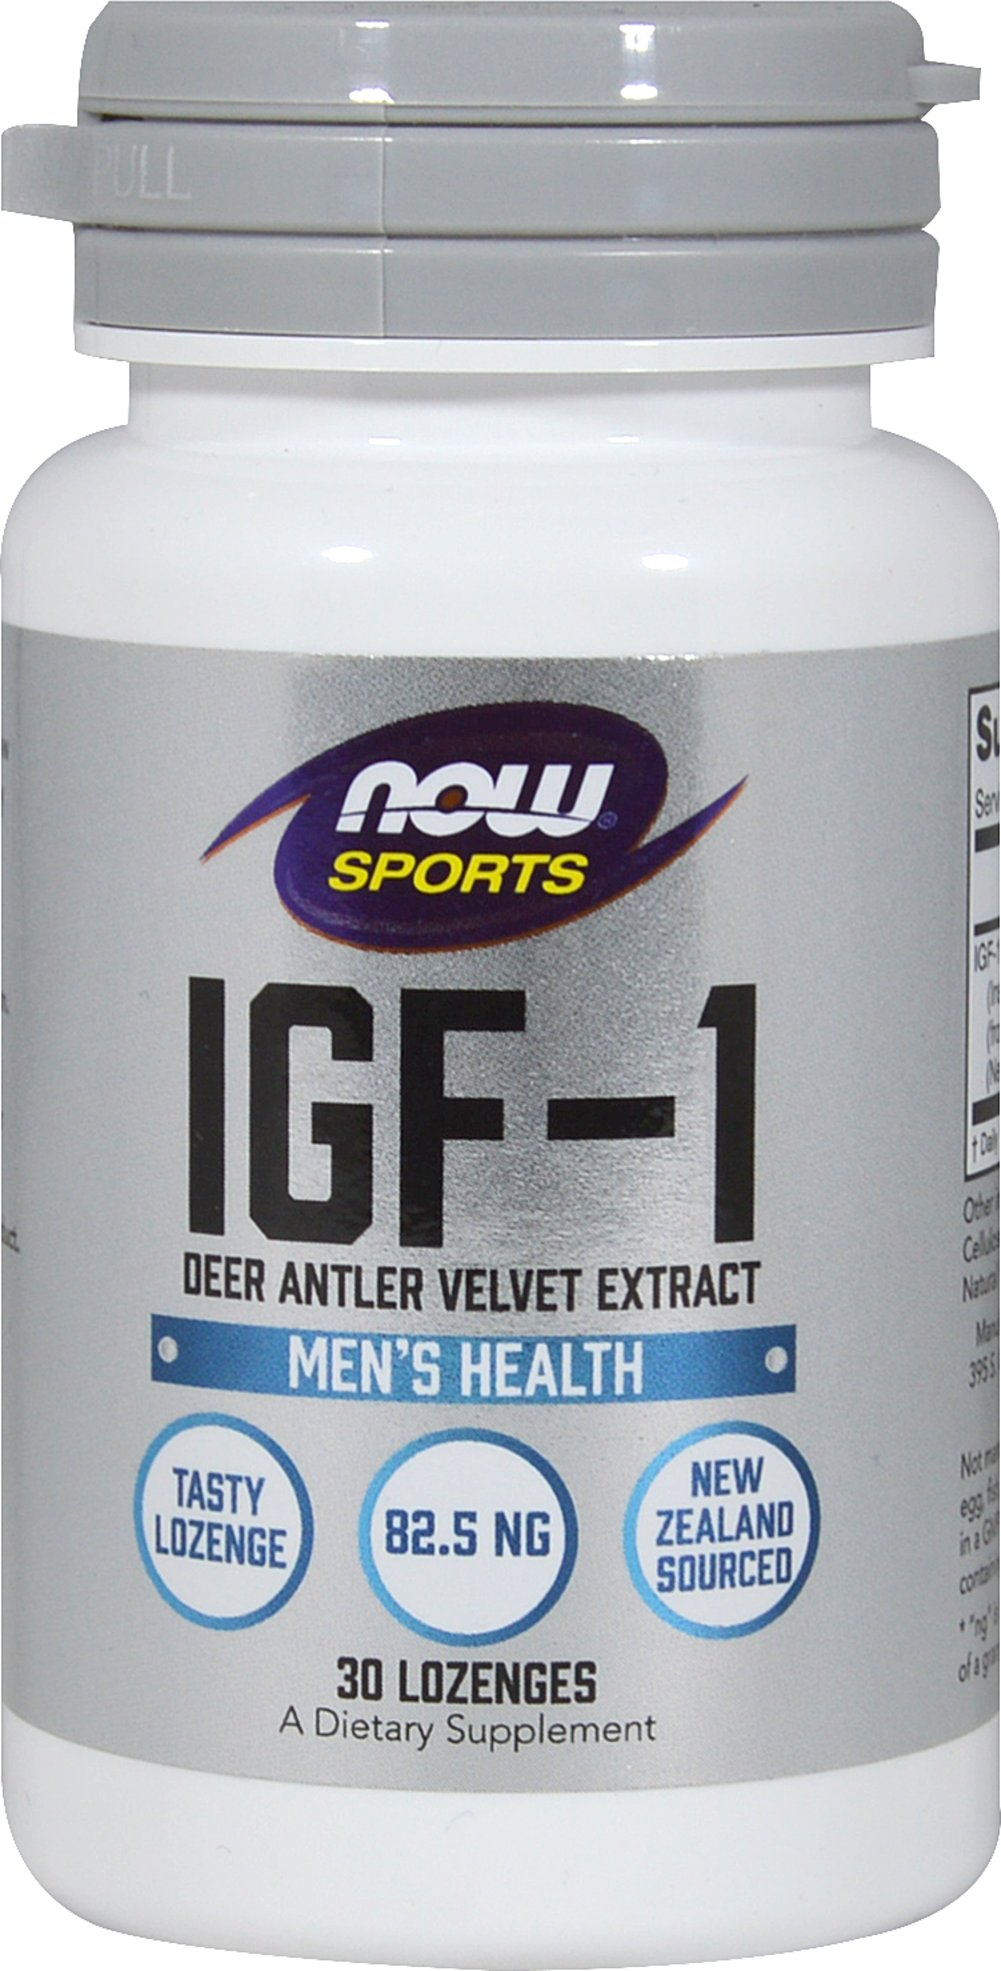 IGF-1 New Zealand Deer Antler Velvet Extract From the Manufacturer's Label:<br /><br />New Zealand Deer Antler Velvet Extract<br />• Natural Growth Factor provides Anti-Aging and Healthy Immune Support**<br /><br />IGF-1 (Insulin Growth Factor-1) is a compound produced primarily in the liver through a conversion of HGH (Human Growth Hormone). HGH is secreted by the pituitary gland and is essential for growth and healthy immune system function.**<br /><b